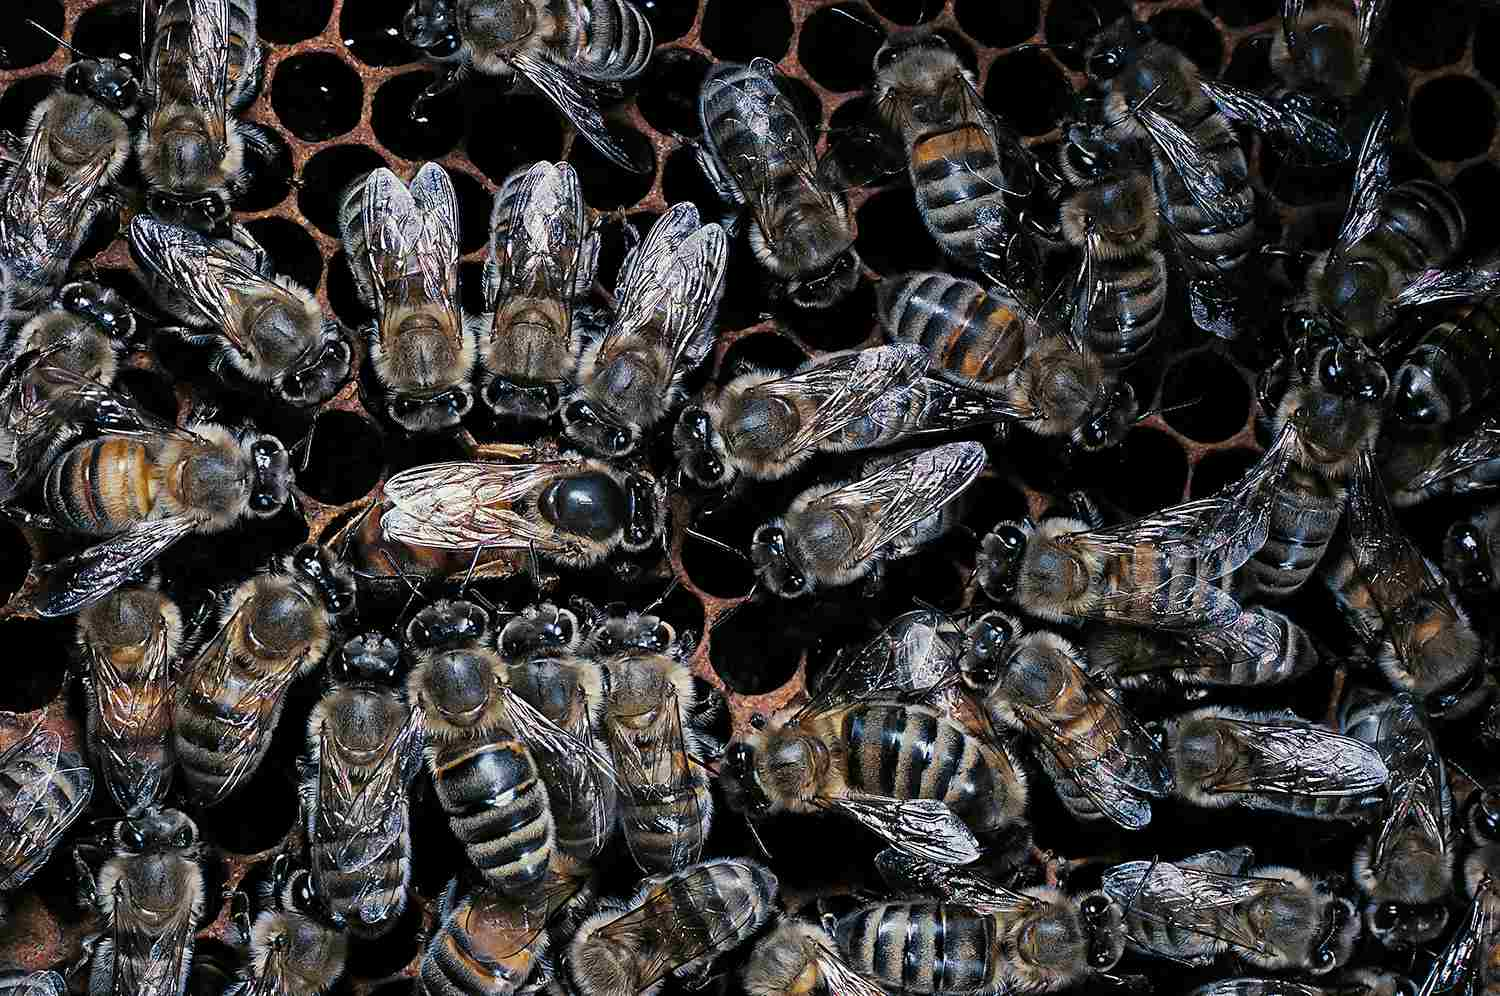 Apis mellifera (honey bee) - queen with attendants on a comb